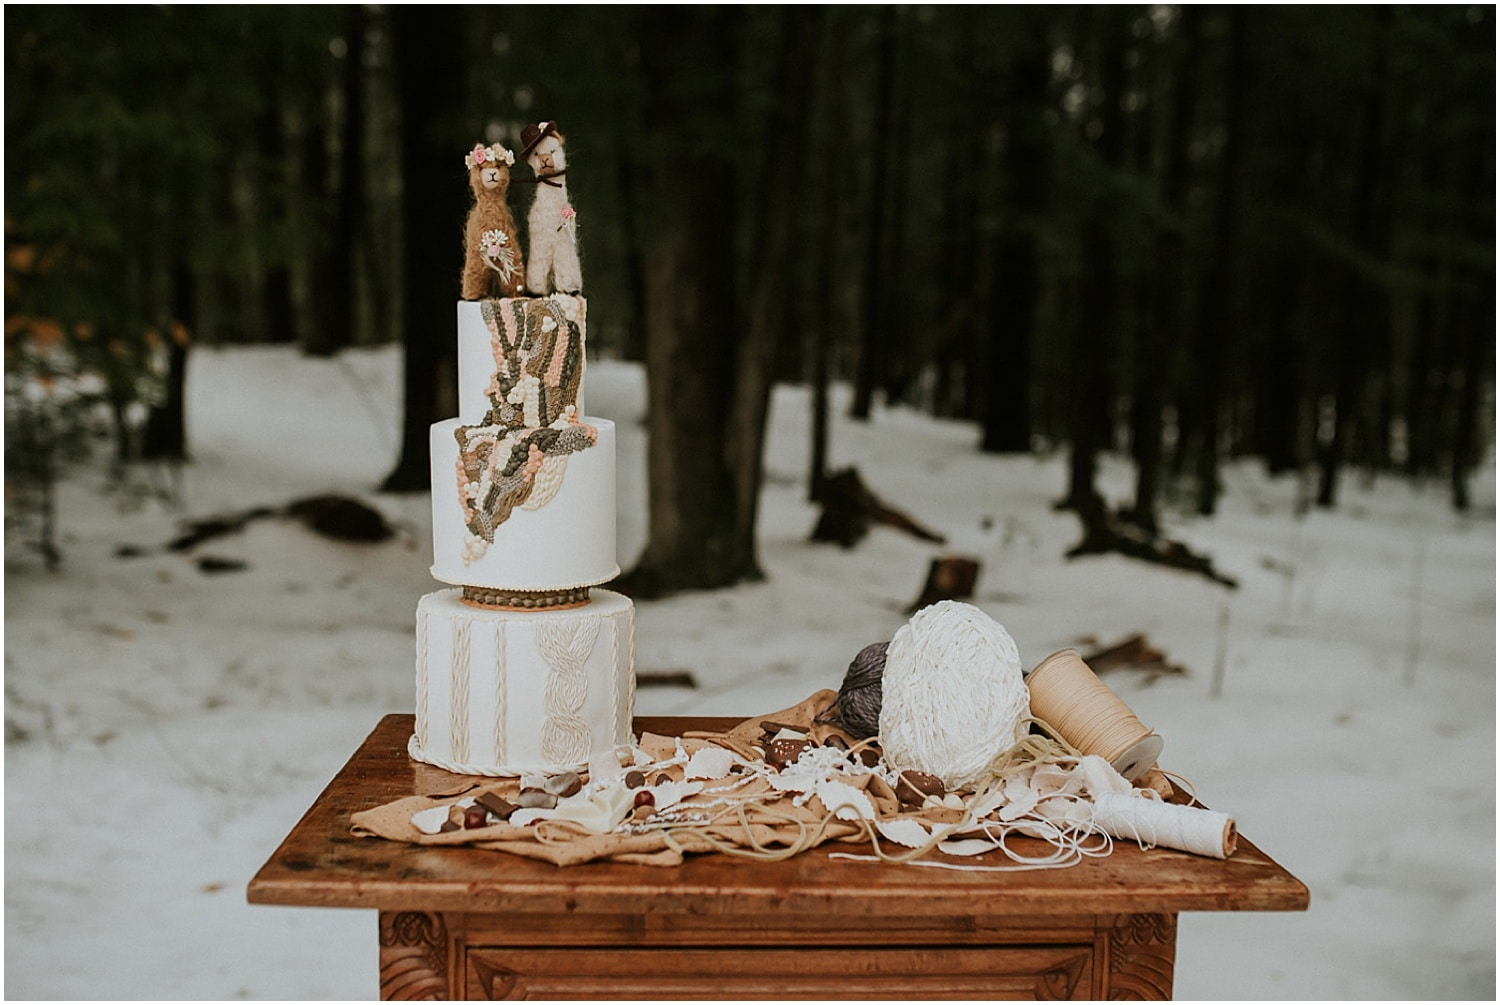 yarn and cake at this farm elopement inspiration